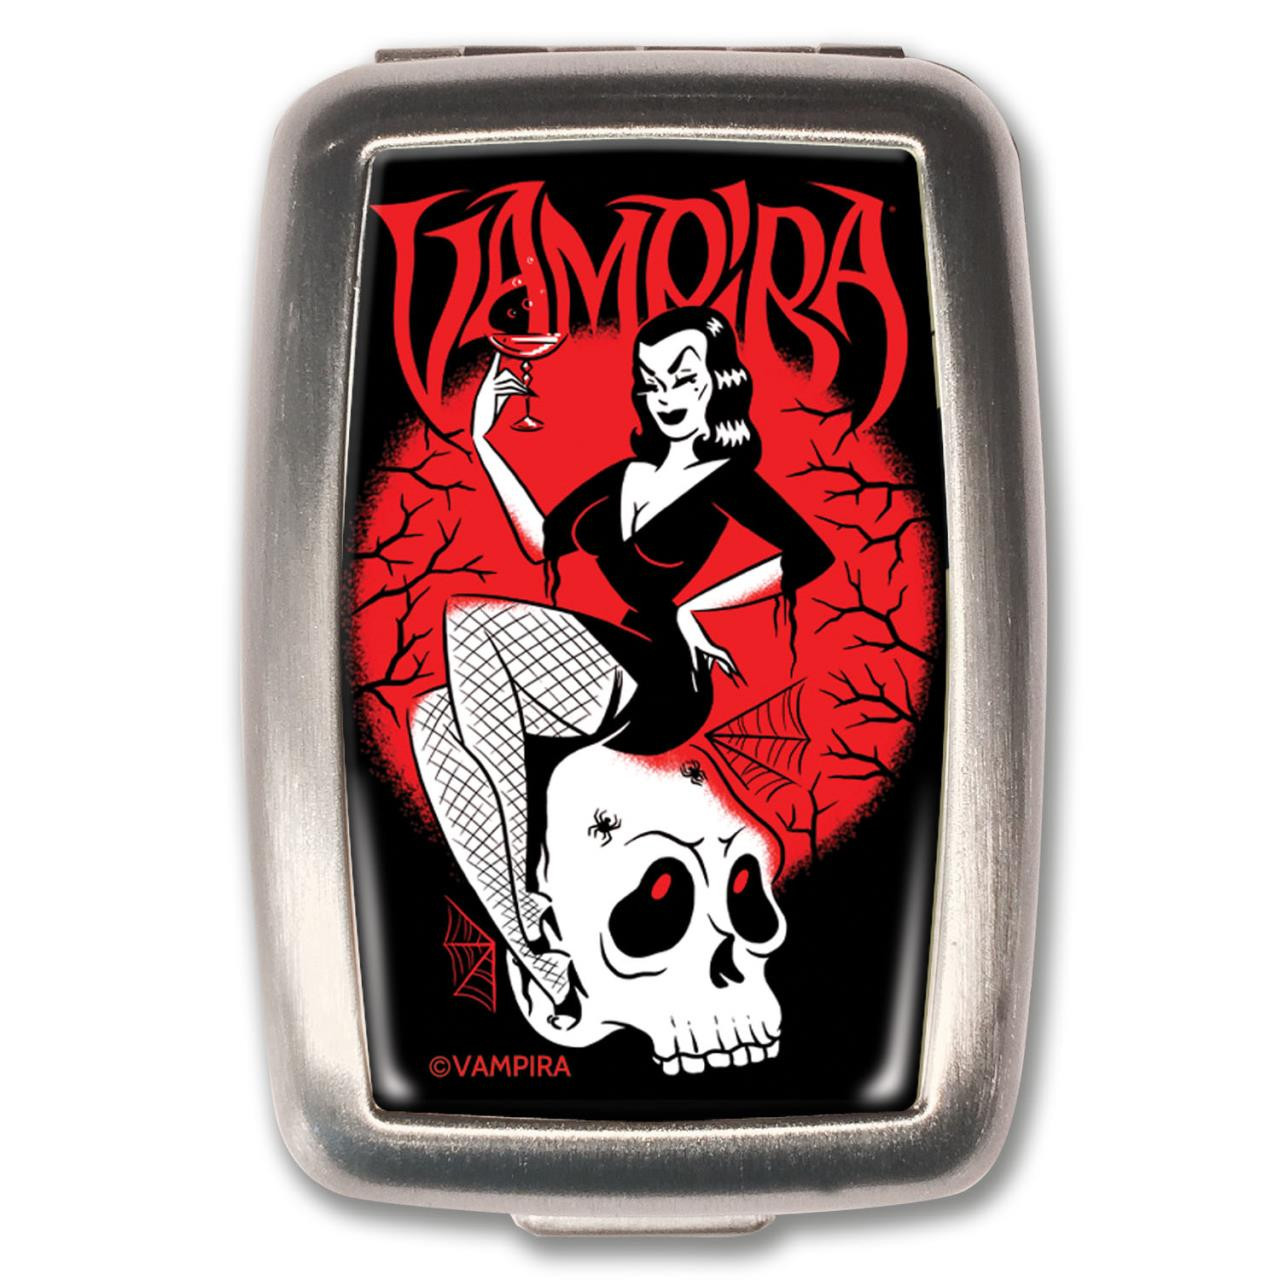 Vampira Toast Pill Box -